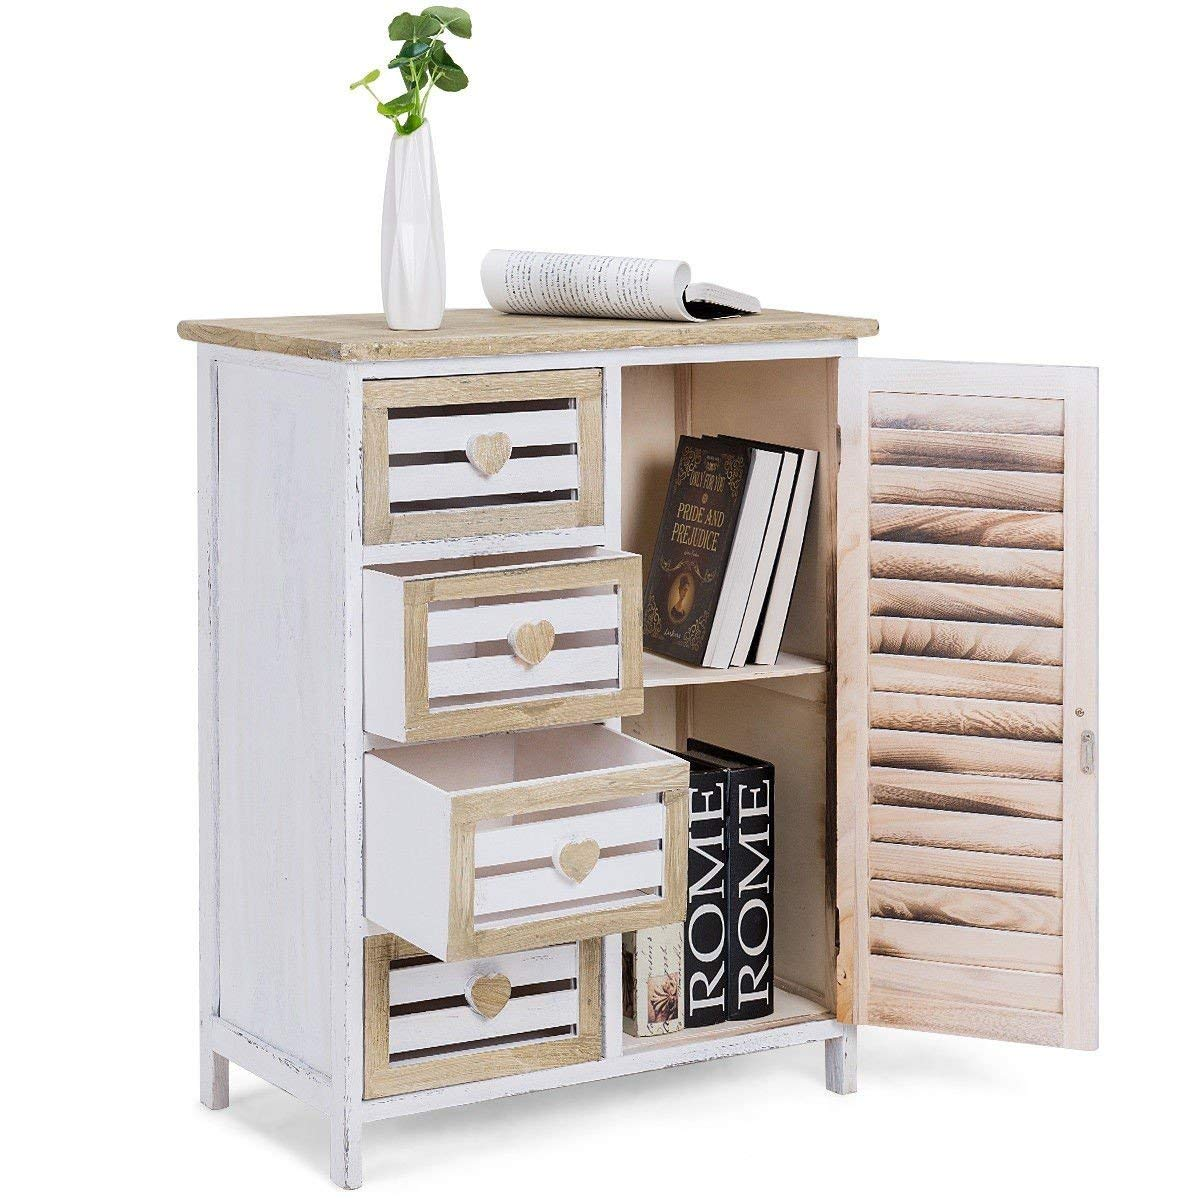 Buy 4 Bin-Type Drawers Wooden Free Standing Storage